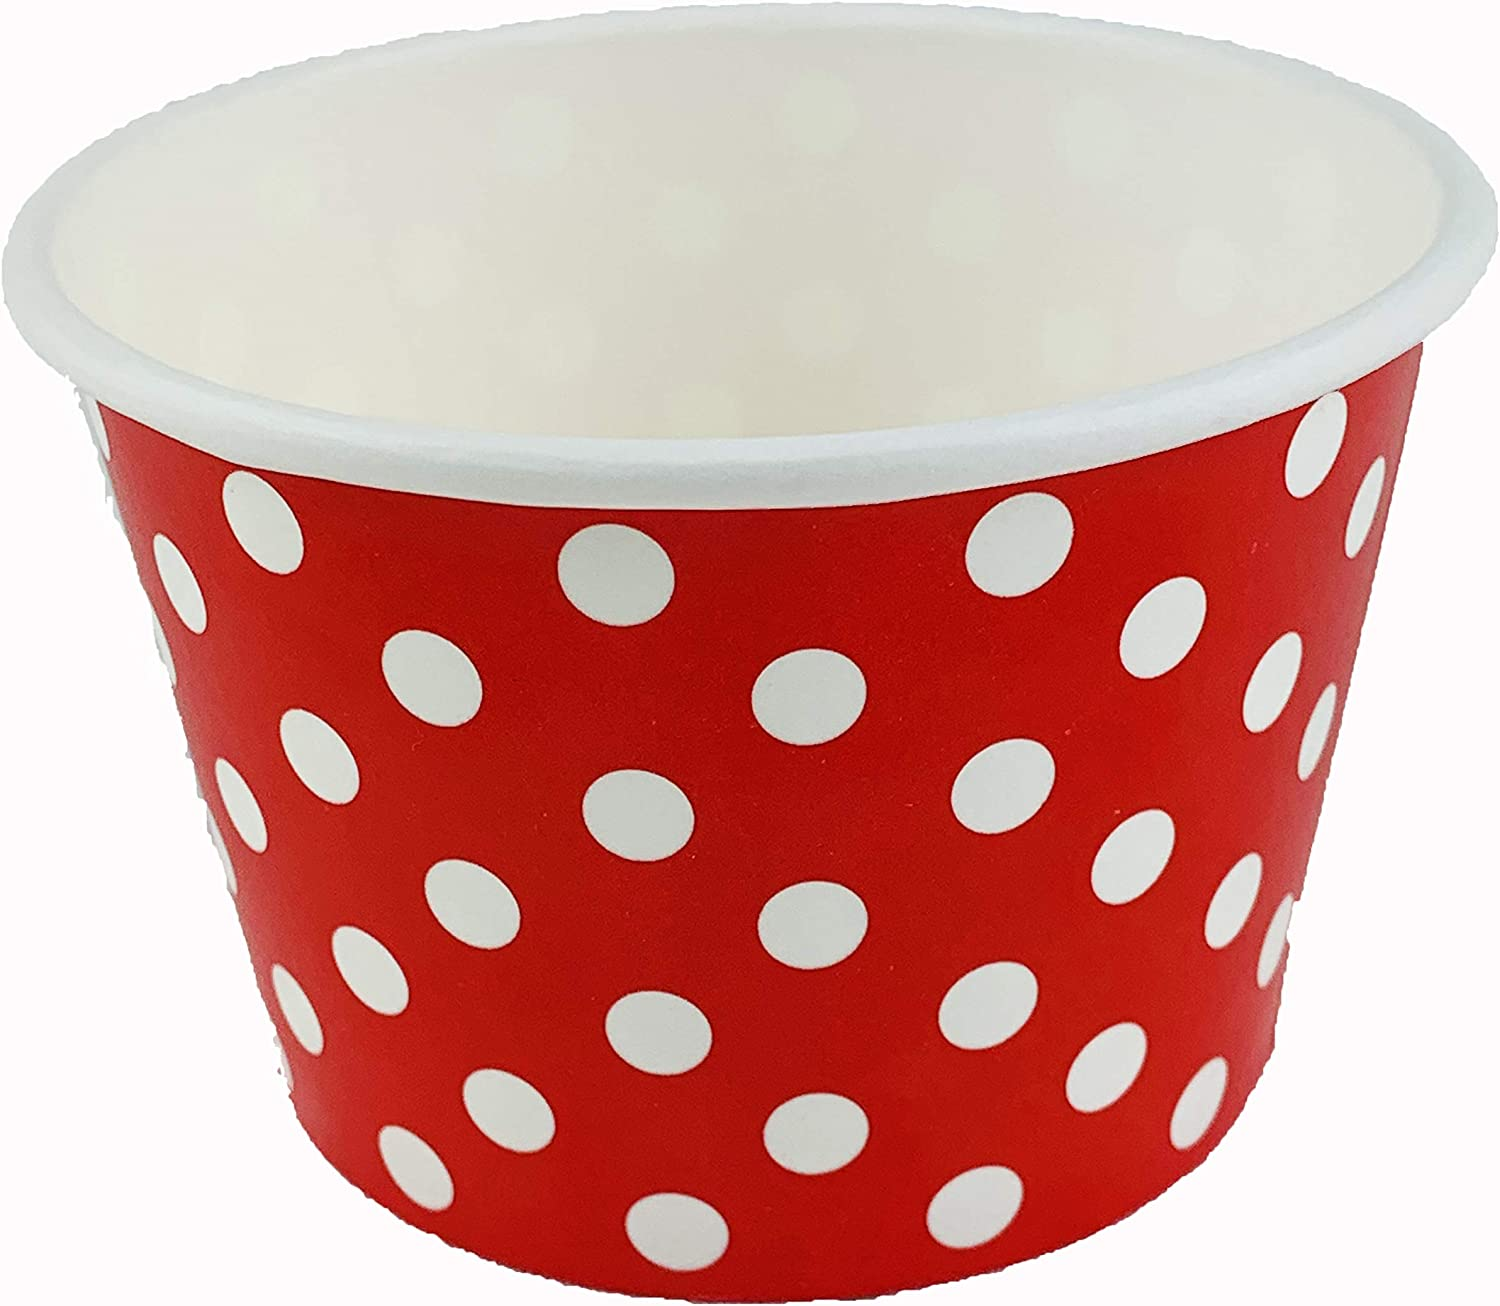 Worlds Paper Ice Cream Cups Polka Dot Paper Yogurt Cups 4oz Red 50 pack